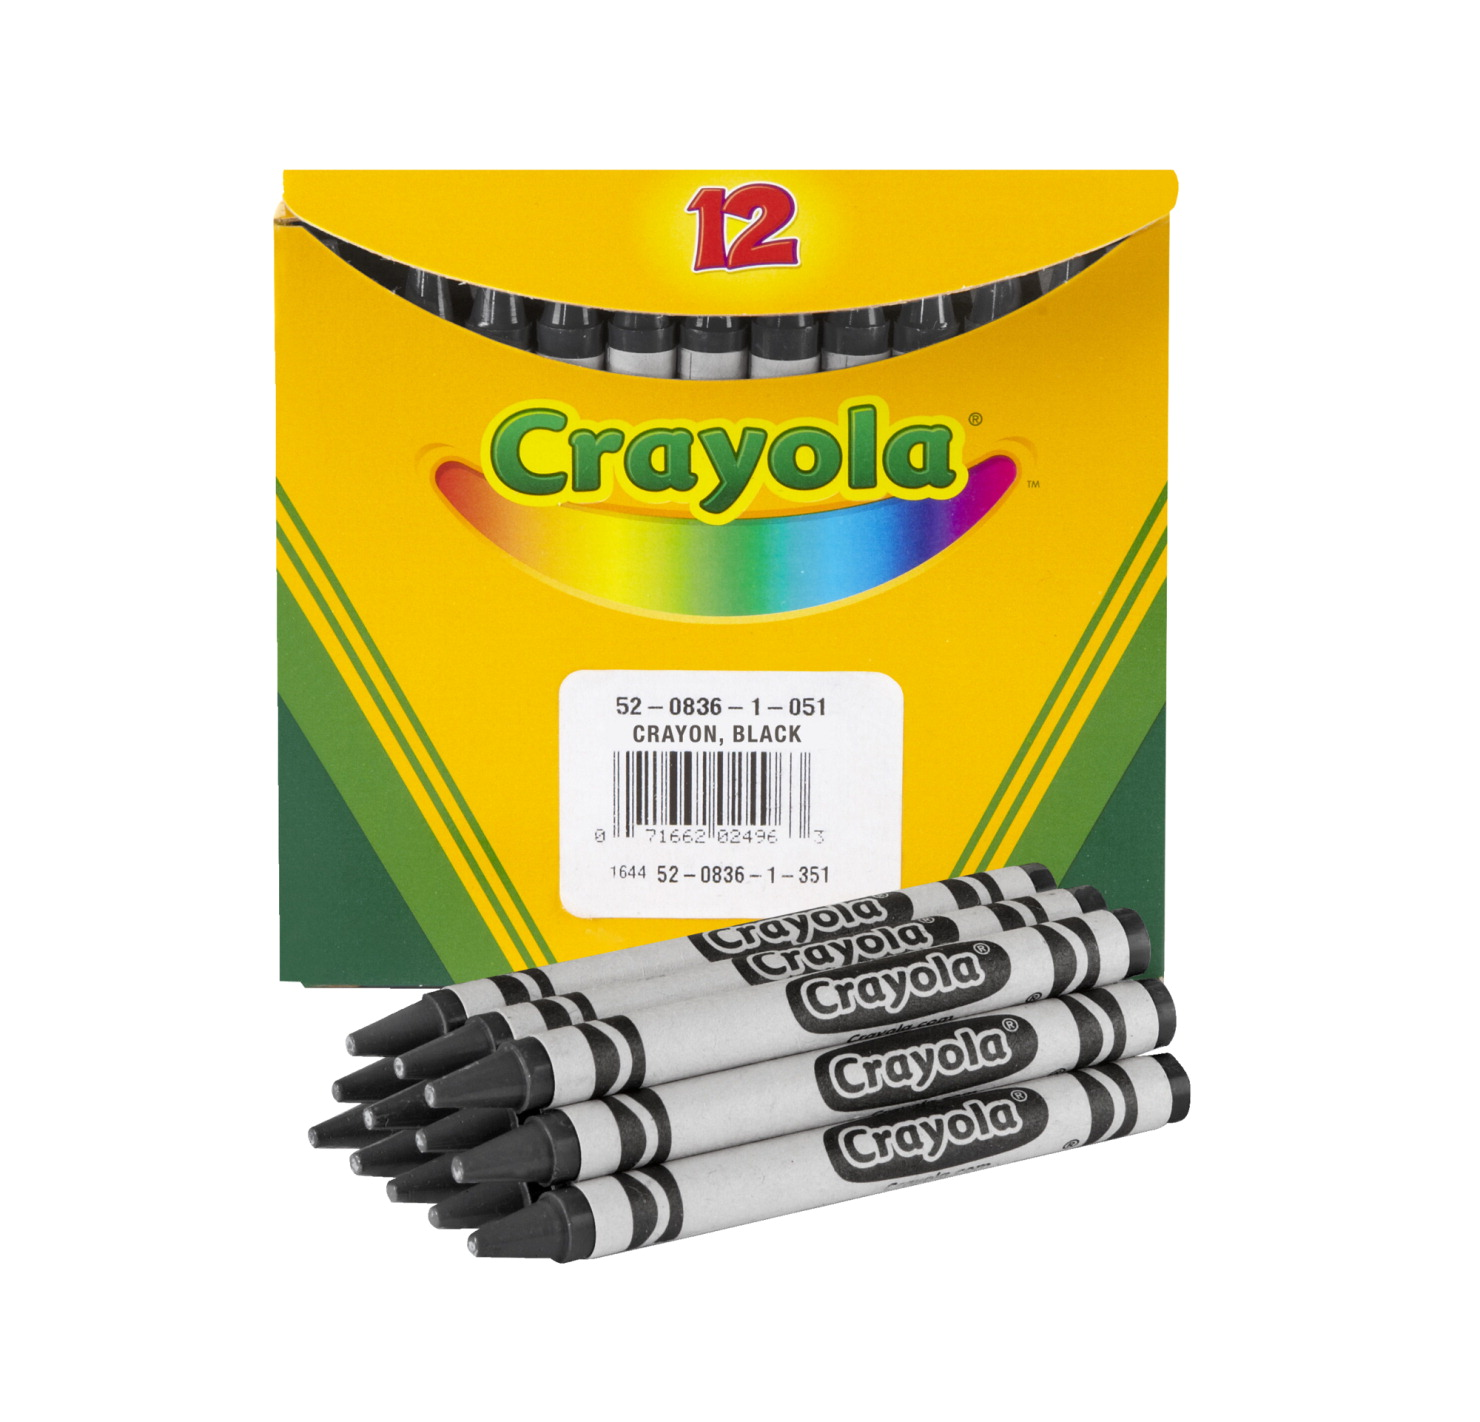 Crayola Non-Toxic Regular Single-Color Crayon Refill, 5/16 X 3-5/8 in, Black, Pack of 12